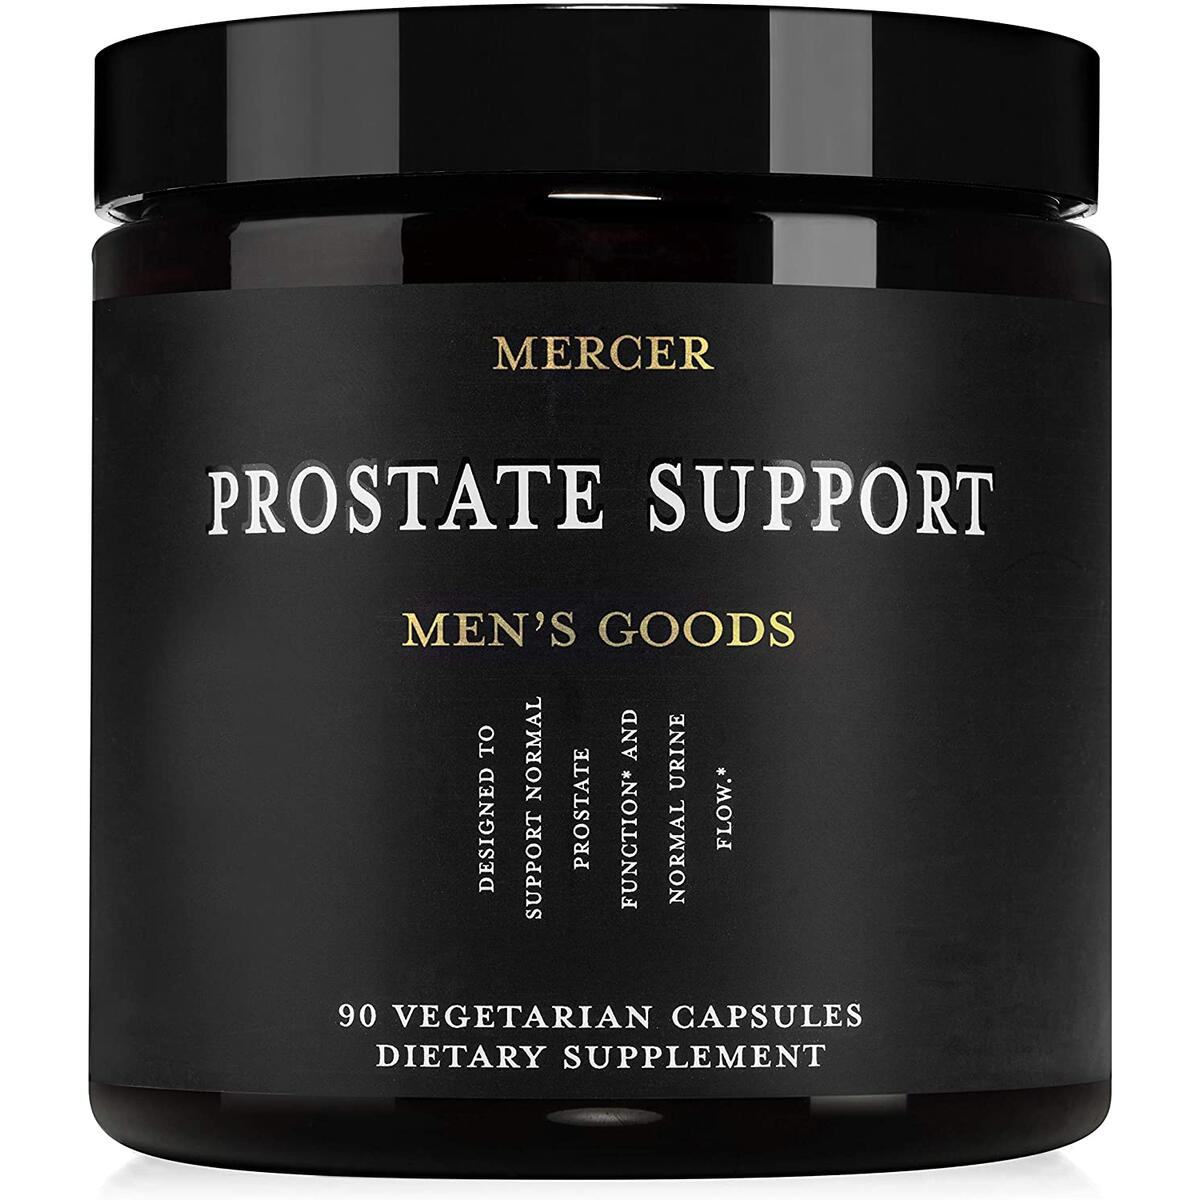 Mercer Men's Goods: Prostate Health Support